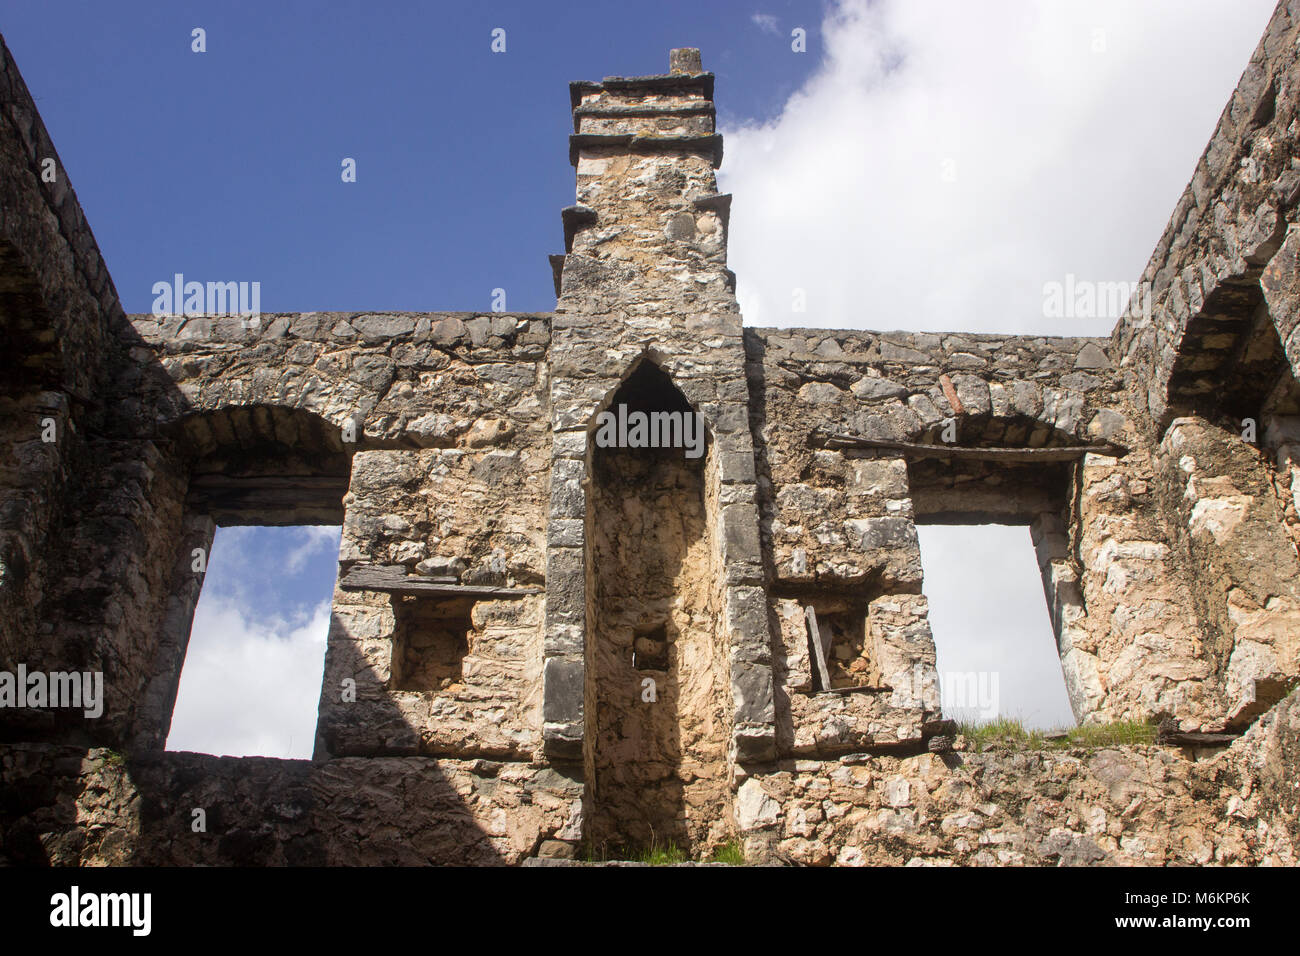 old stone fireplace. Looking at the sky through interior of a ruined old stone house  Stock Image Old Stone Fireplace Window Inside Photos